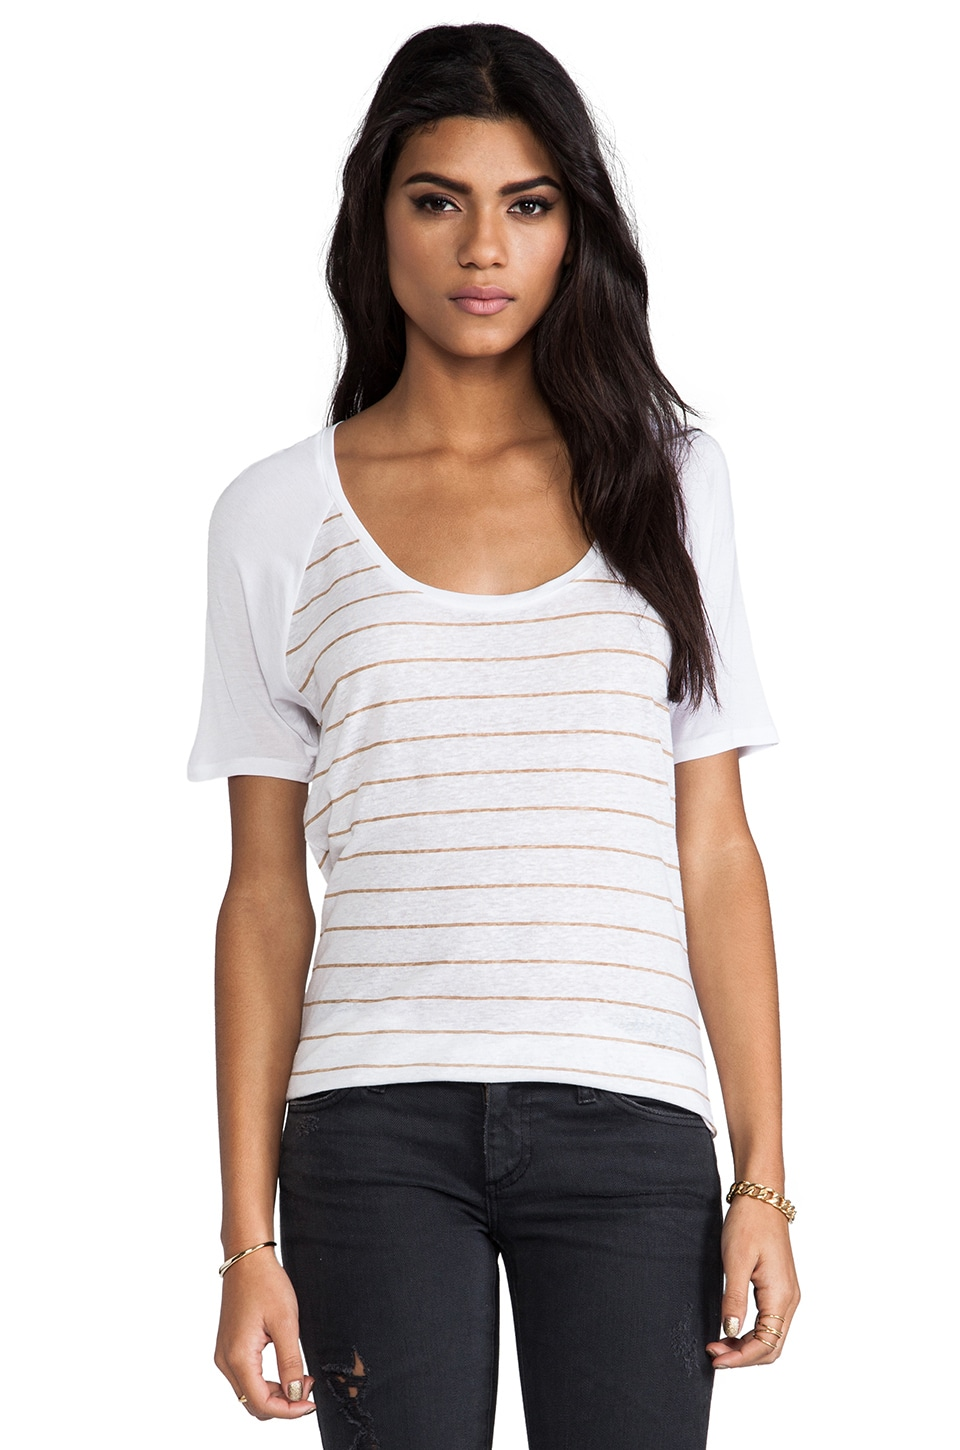 Bella Luxx Linen Scoop Raglan Tee in Cabo Stripe & Camel Heather